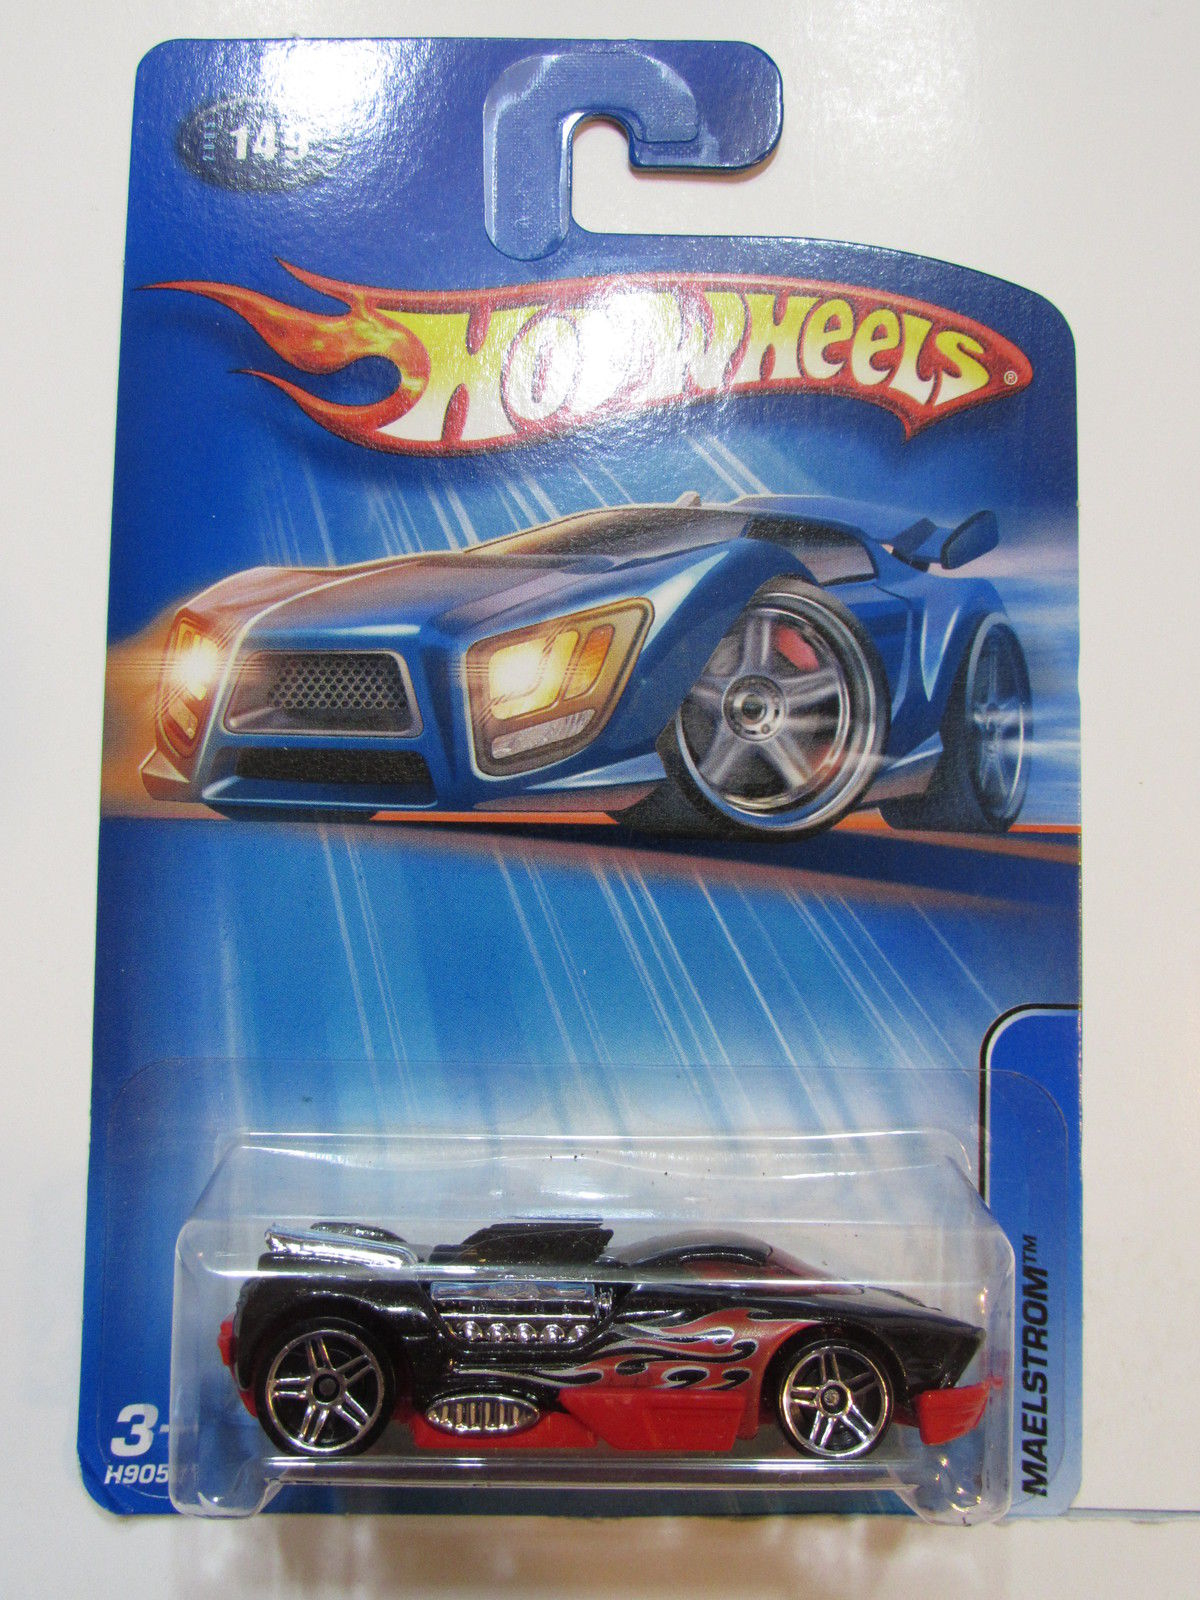 HOT WHEELS 2005 MAELSTROM #149 PR5 WHEELS